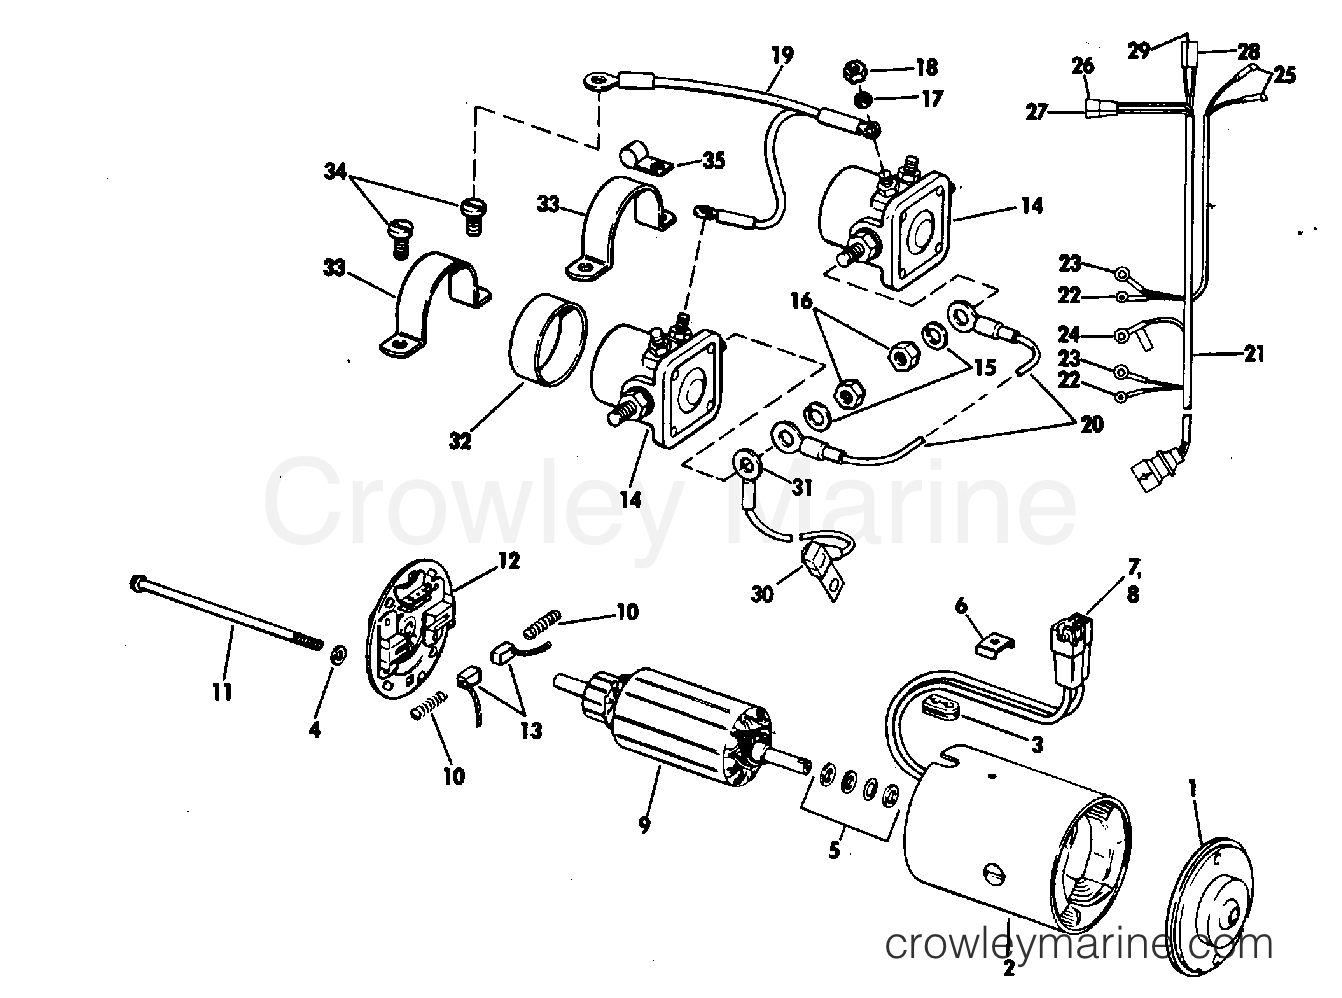 Omc Motor Diagram Wiring Schematics Brp Evinrude Ignition Switch Boat Tilt Group Prestolite Model Etk 410280120155210 Hp 1969 Water Pump